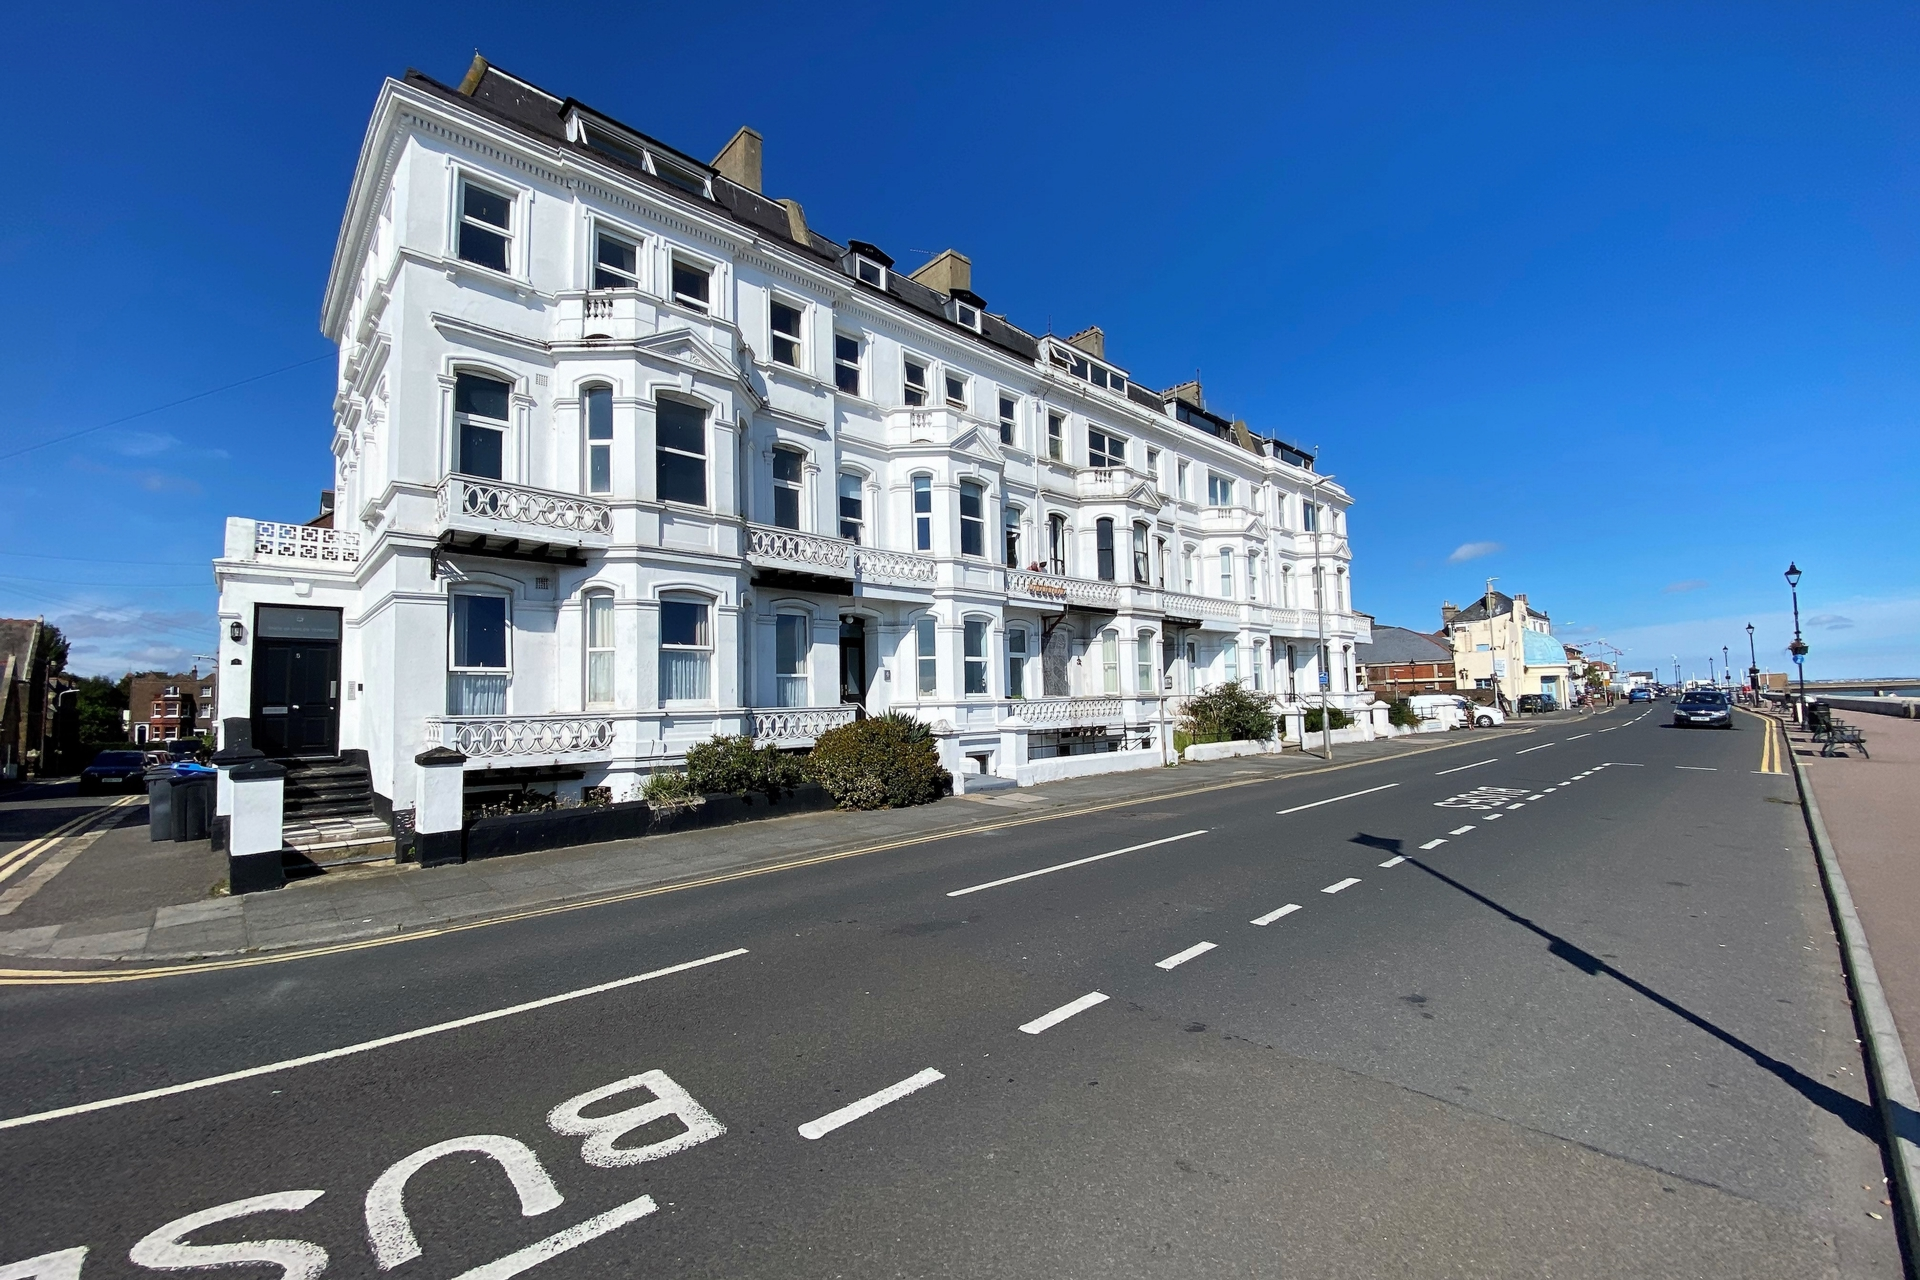 Prince of Wales Terrace  Deal  CT14